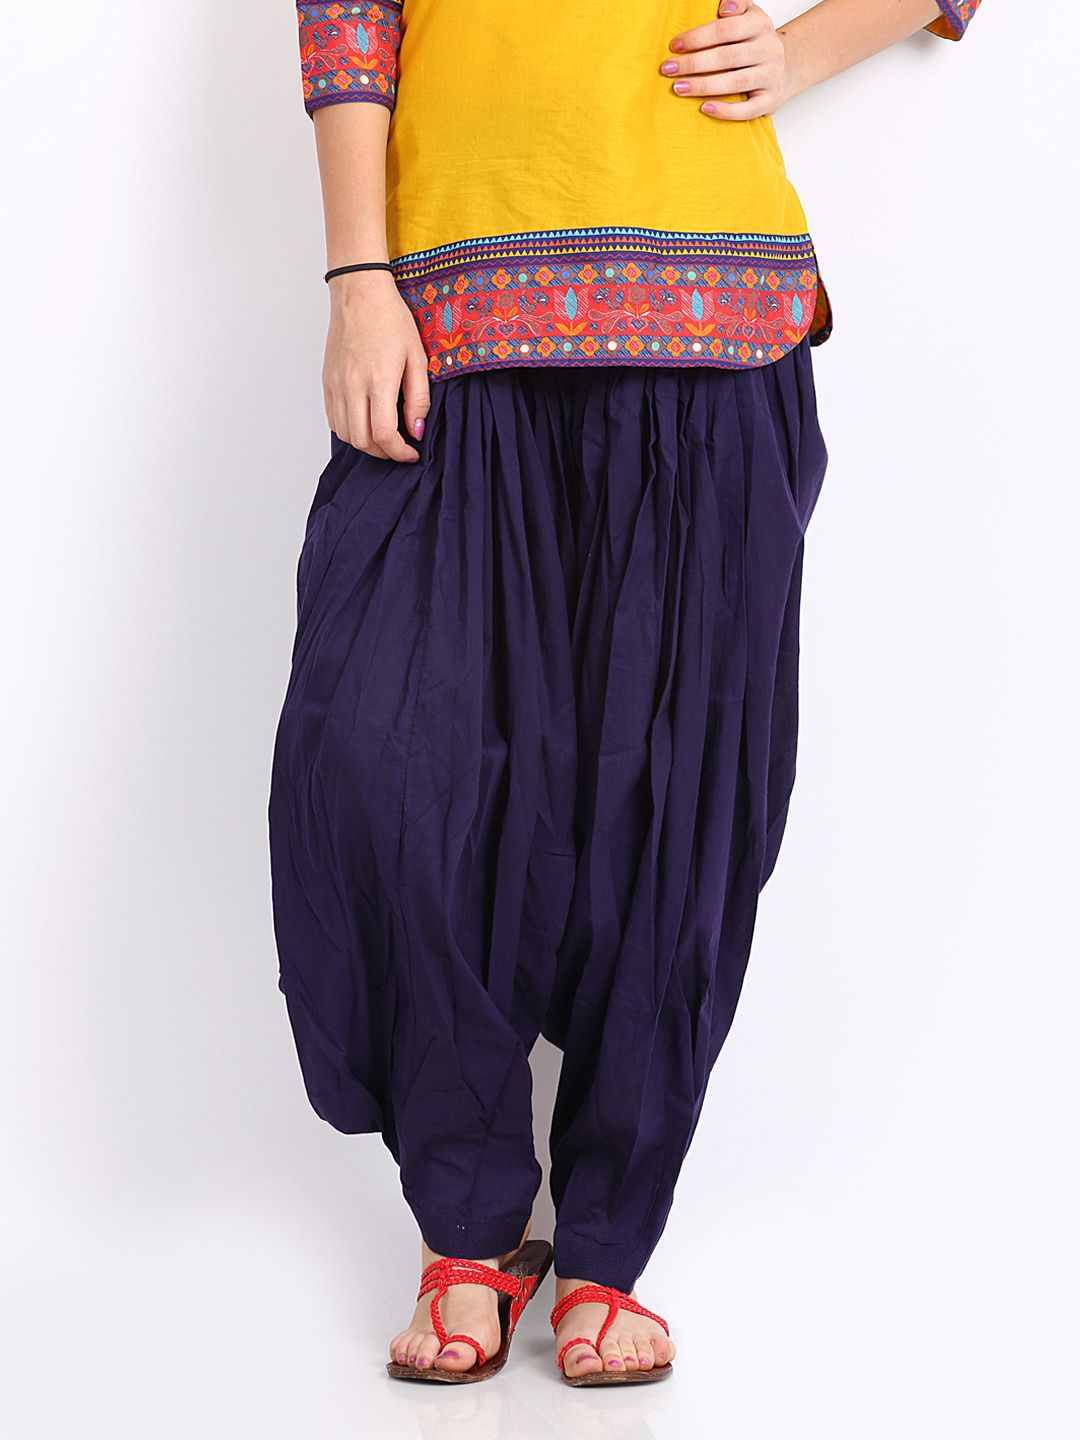 aa3423300f669 Patiala Pants for Women in Flipkart view more great looking women's patiala  pants